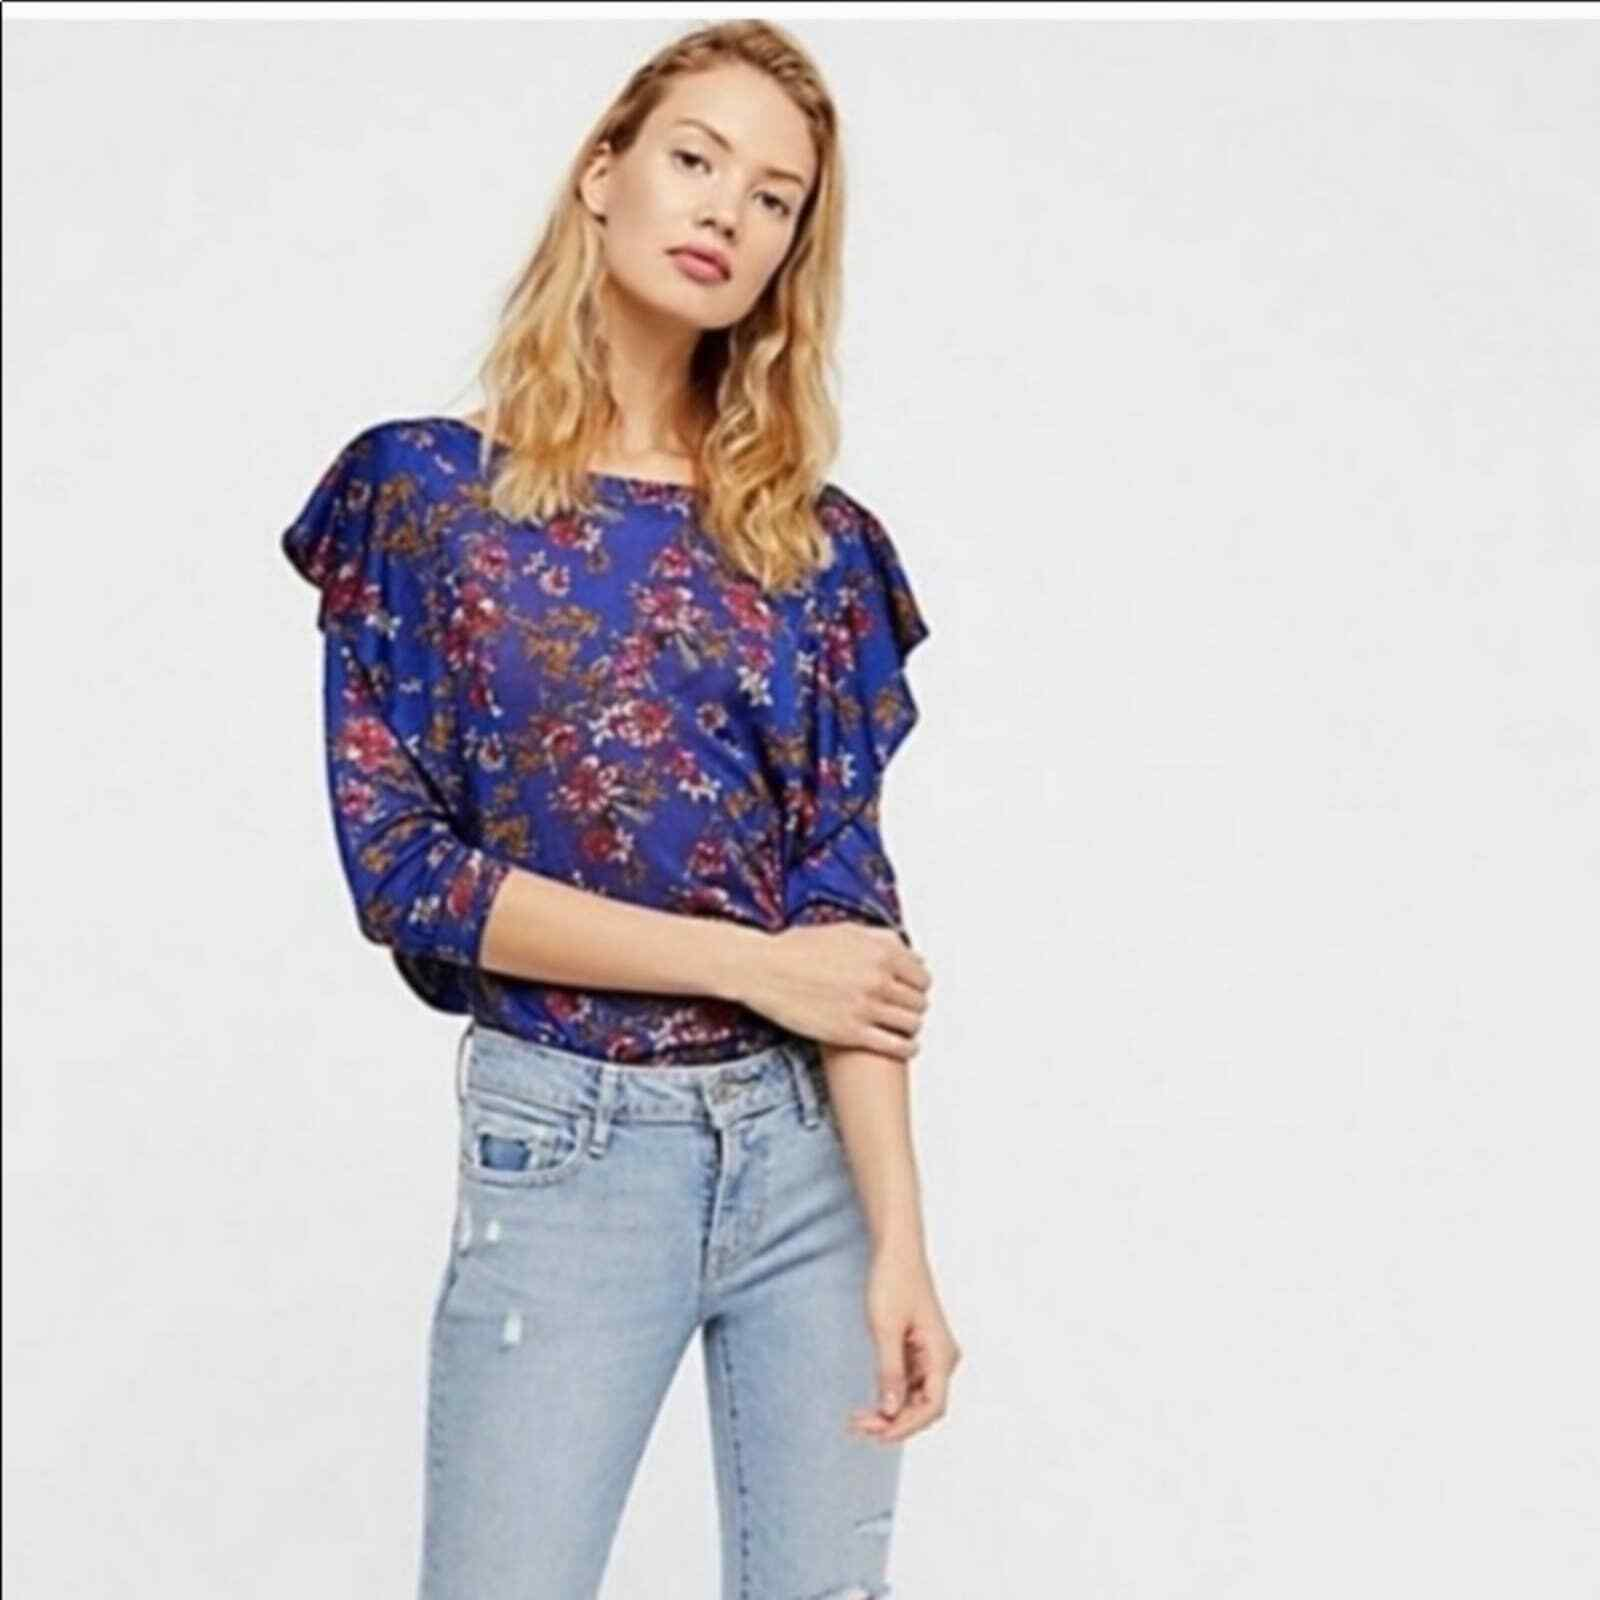 Free People Dock Street Ruffle Floral Top Size S